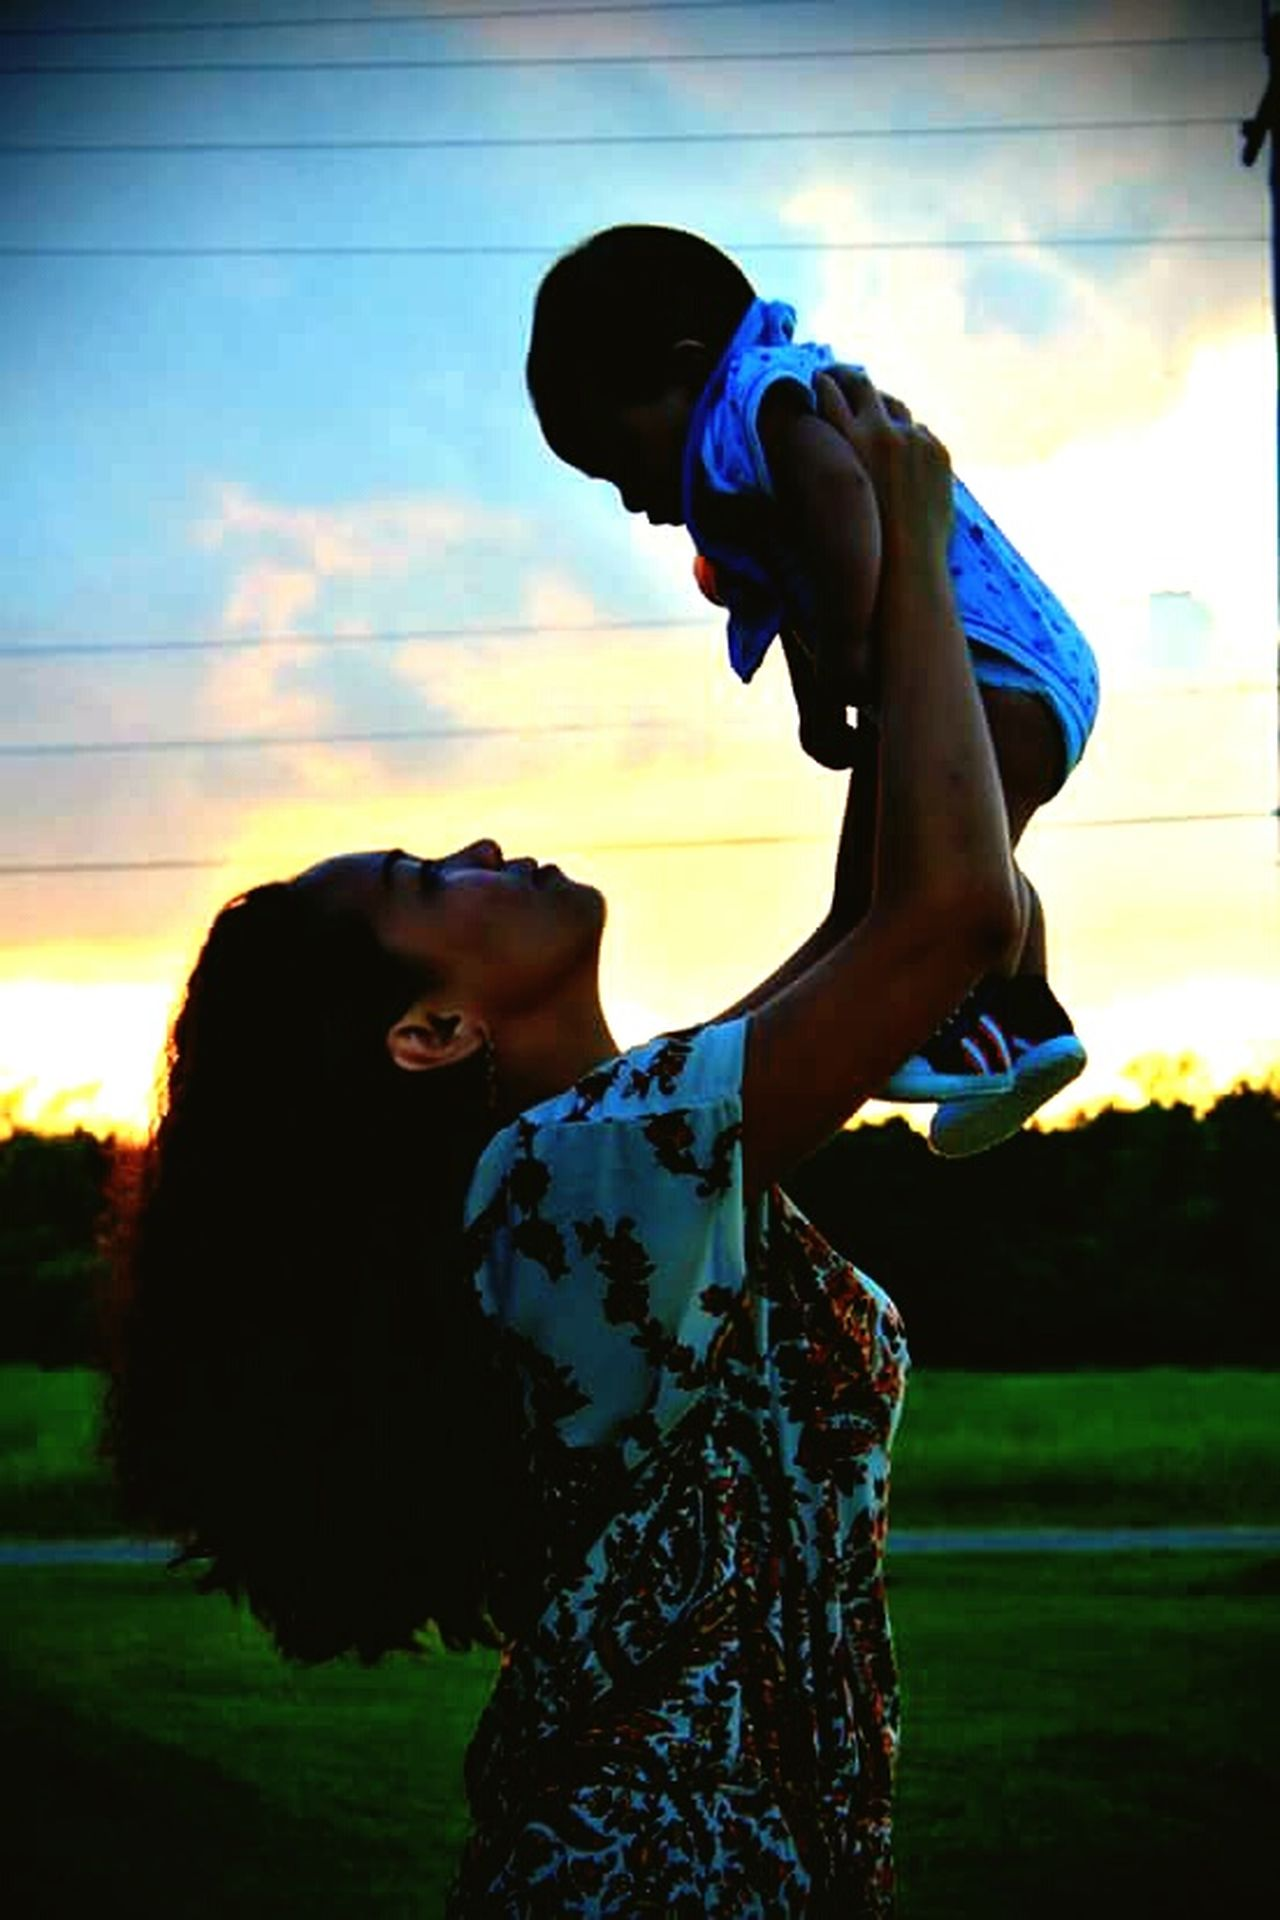 RePicture Motherhood Enjoying Life Nanay Nanaynibuhawi Buhawi Motherandchild ILOVEMYSON Love Happiness Motherhood